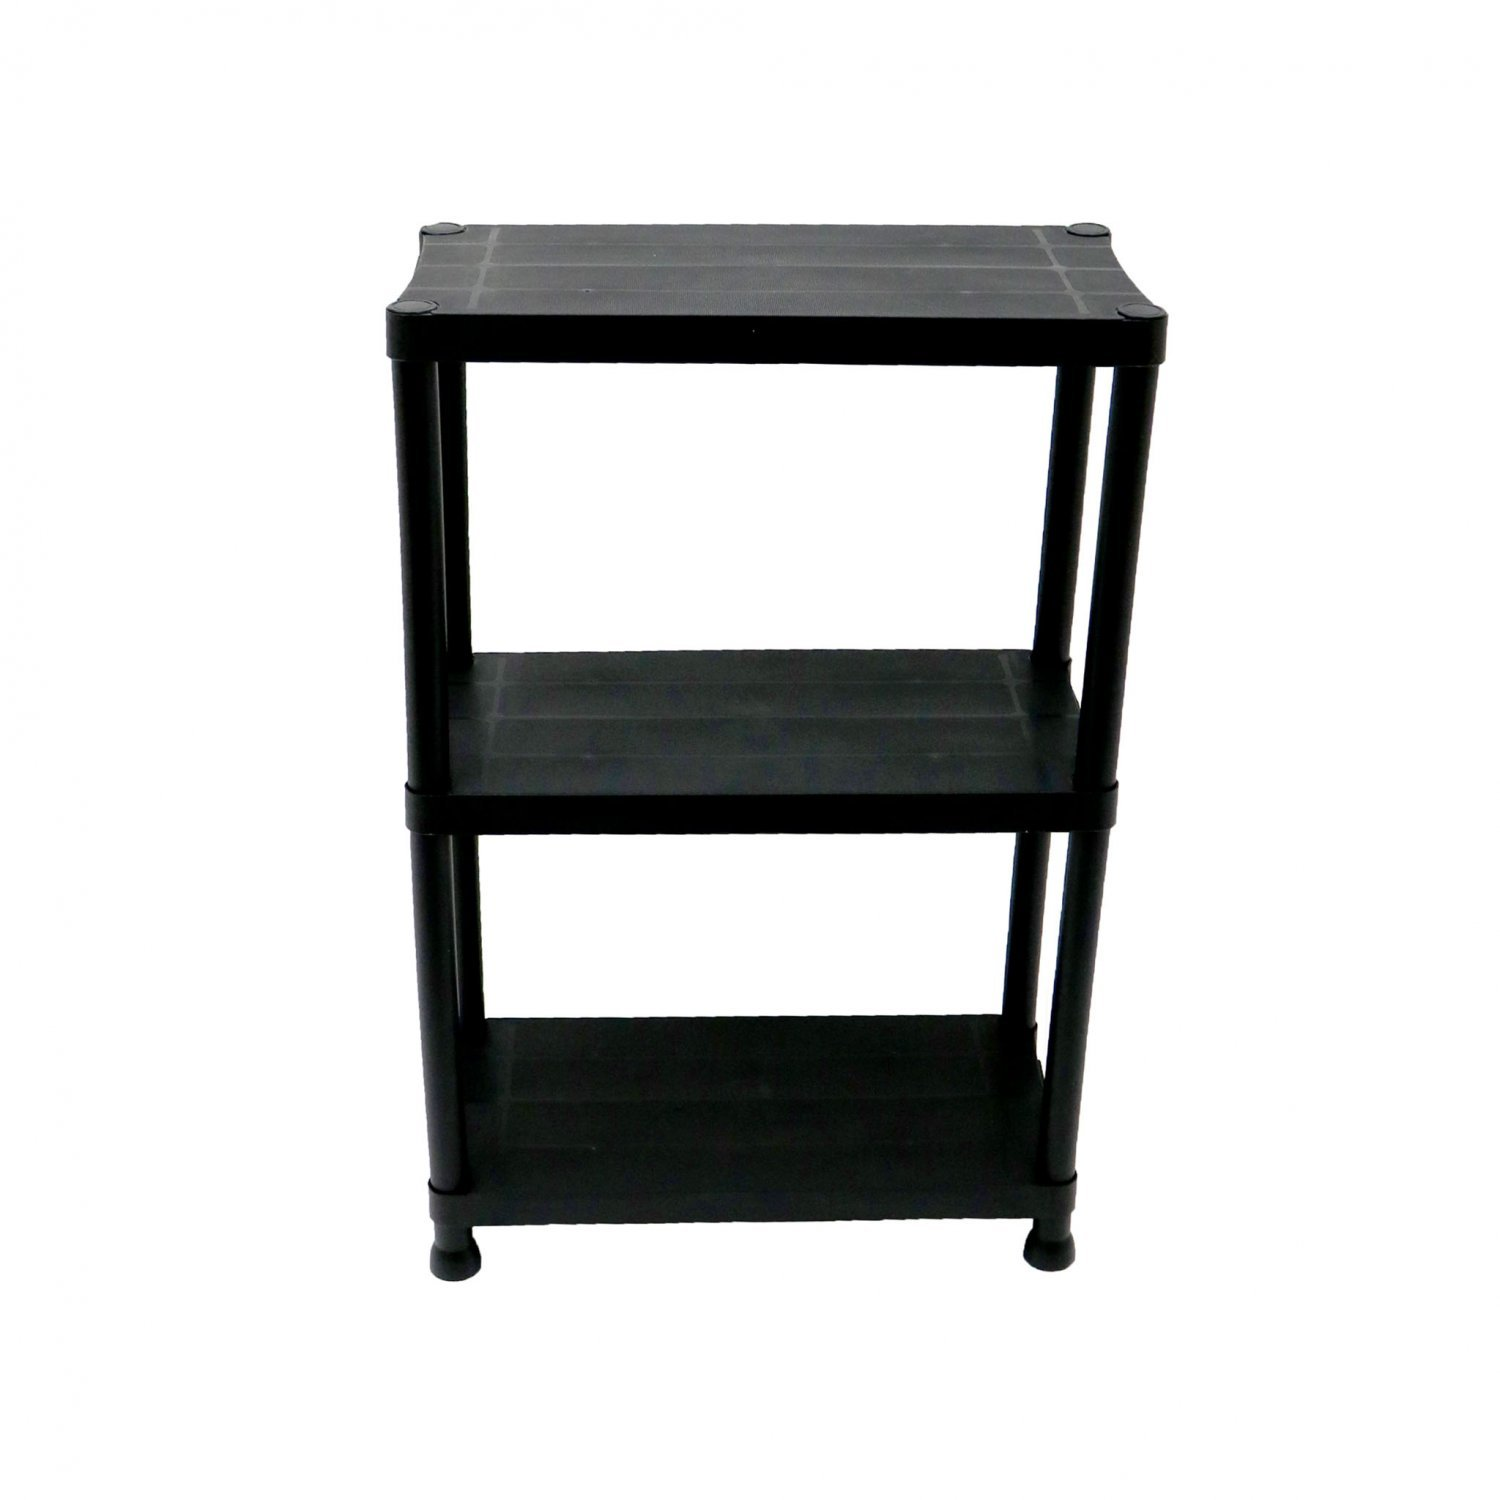 3 tier black plastic heavy duty shelving racking storage unit oypla stocking the. Black Bedroom Furniture Sets. Home Design Ideas